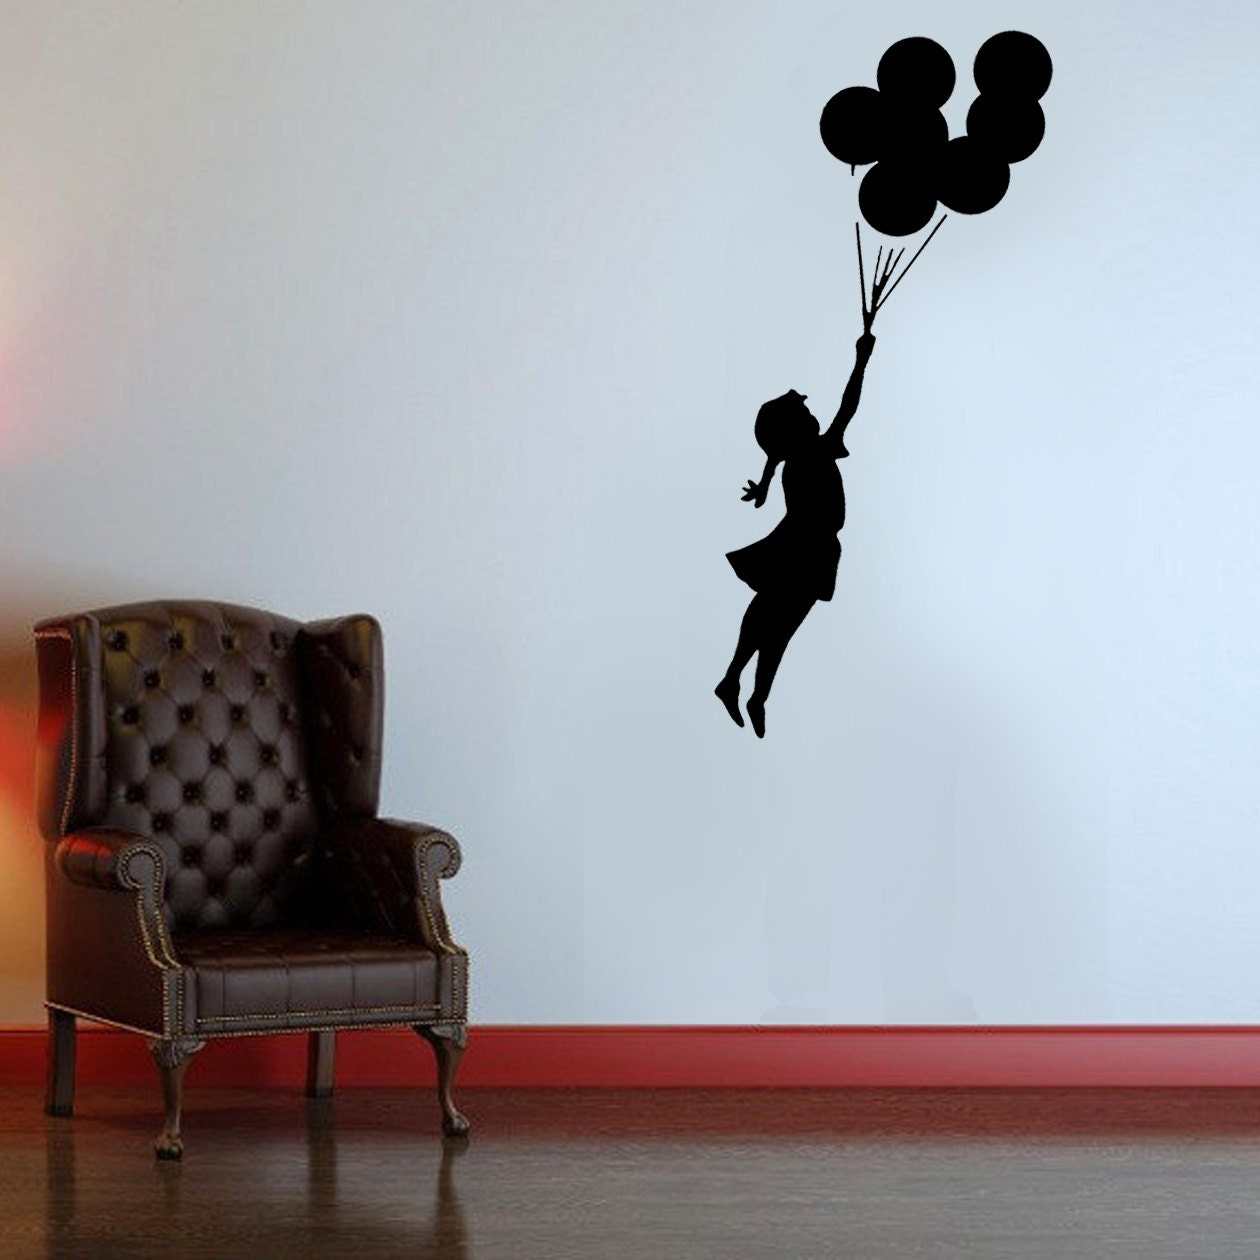 Banksy stencil flying balloon girl girl with balloons banksy details paint this banksy flying balloon girl stencil amipublicfo Image collections